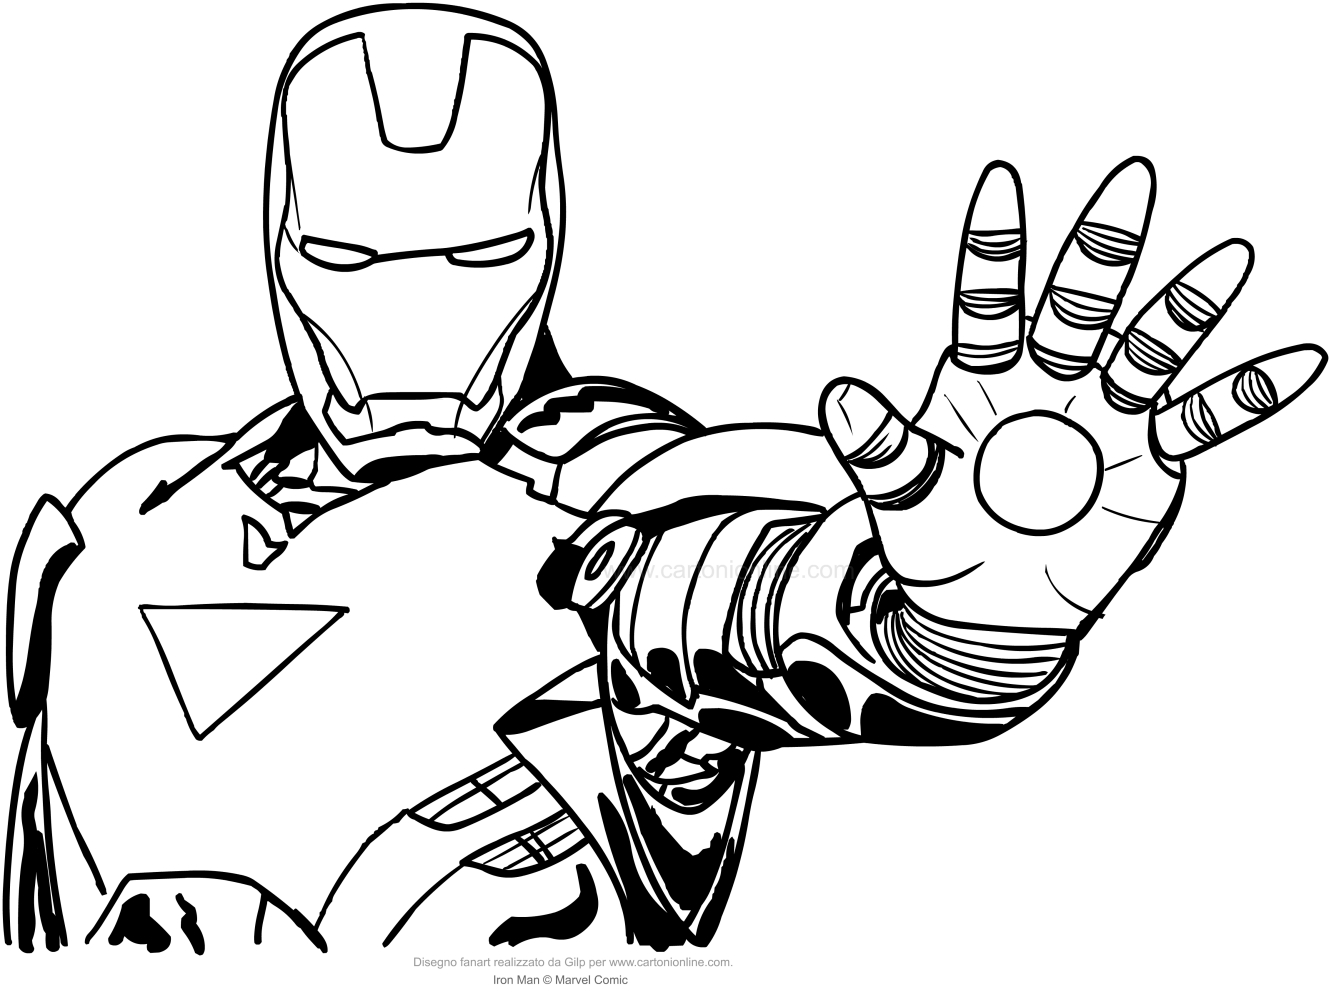 Dibujo de Iron-Man media longitud para colorear